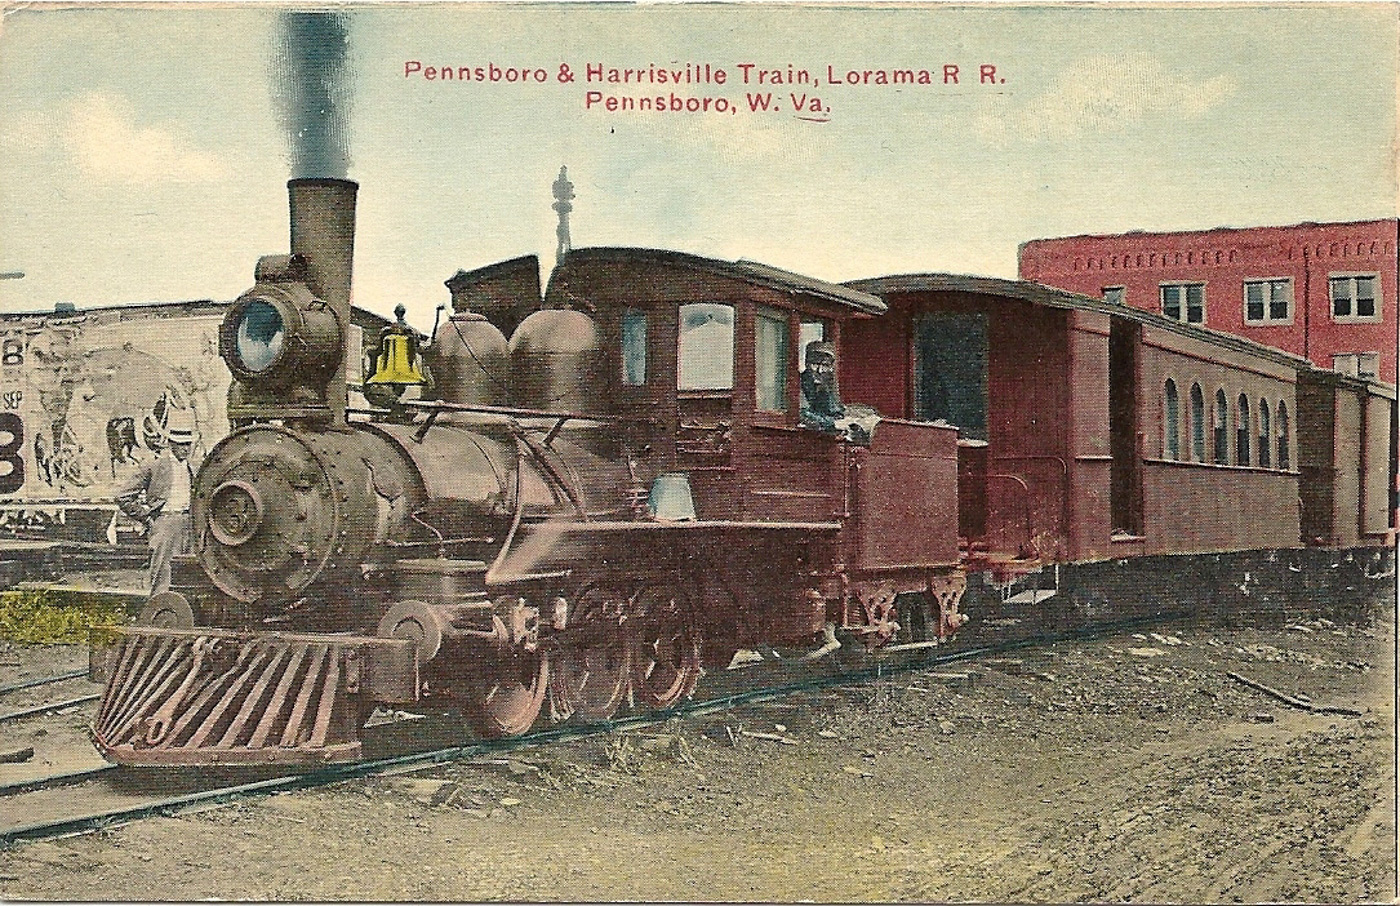 Lorama rr 3 a small porter 0 6 0 with a four wheel tender and a mixed train in tow prepares to leave the depot at pennsboro wv circa 1910 for its eight